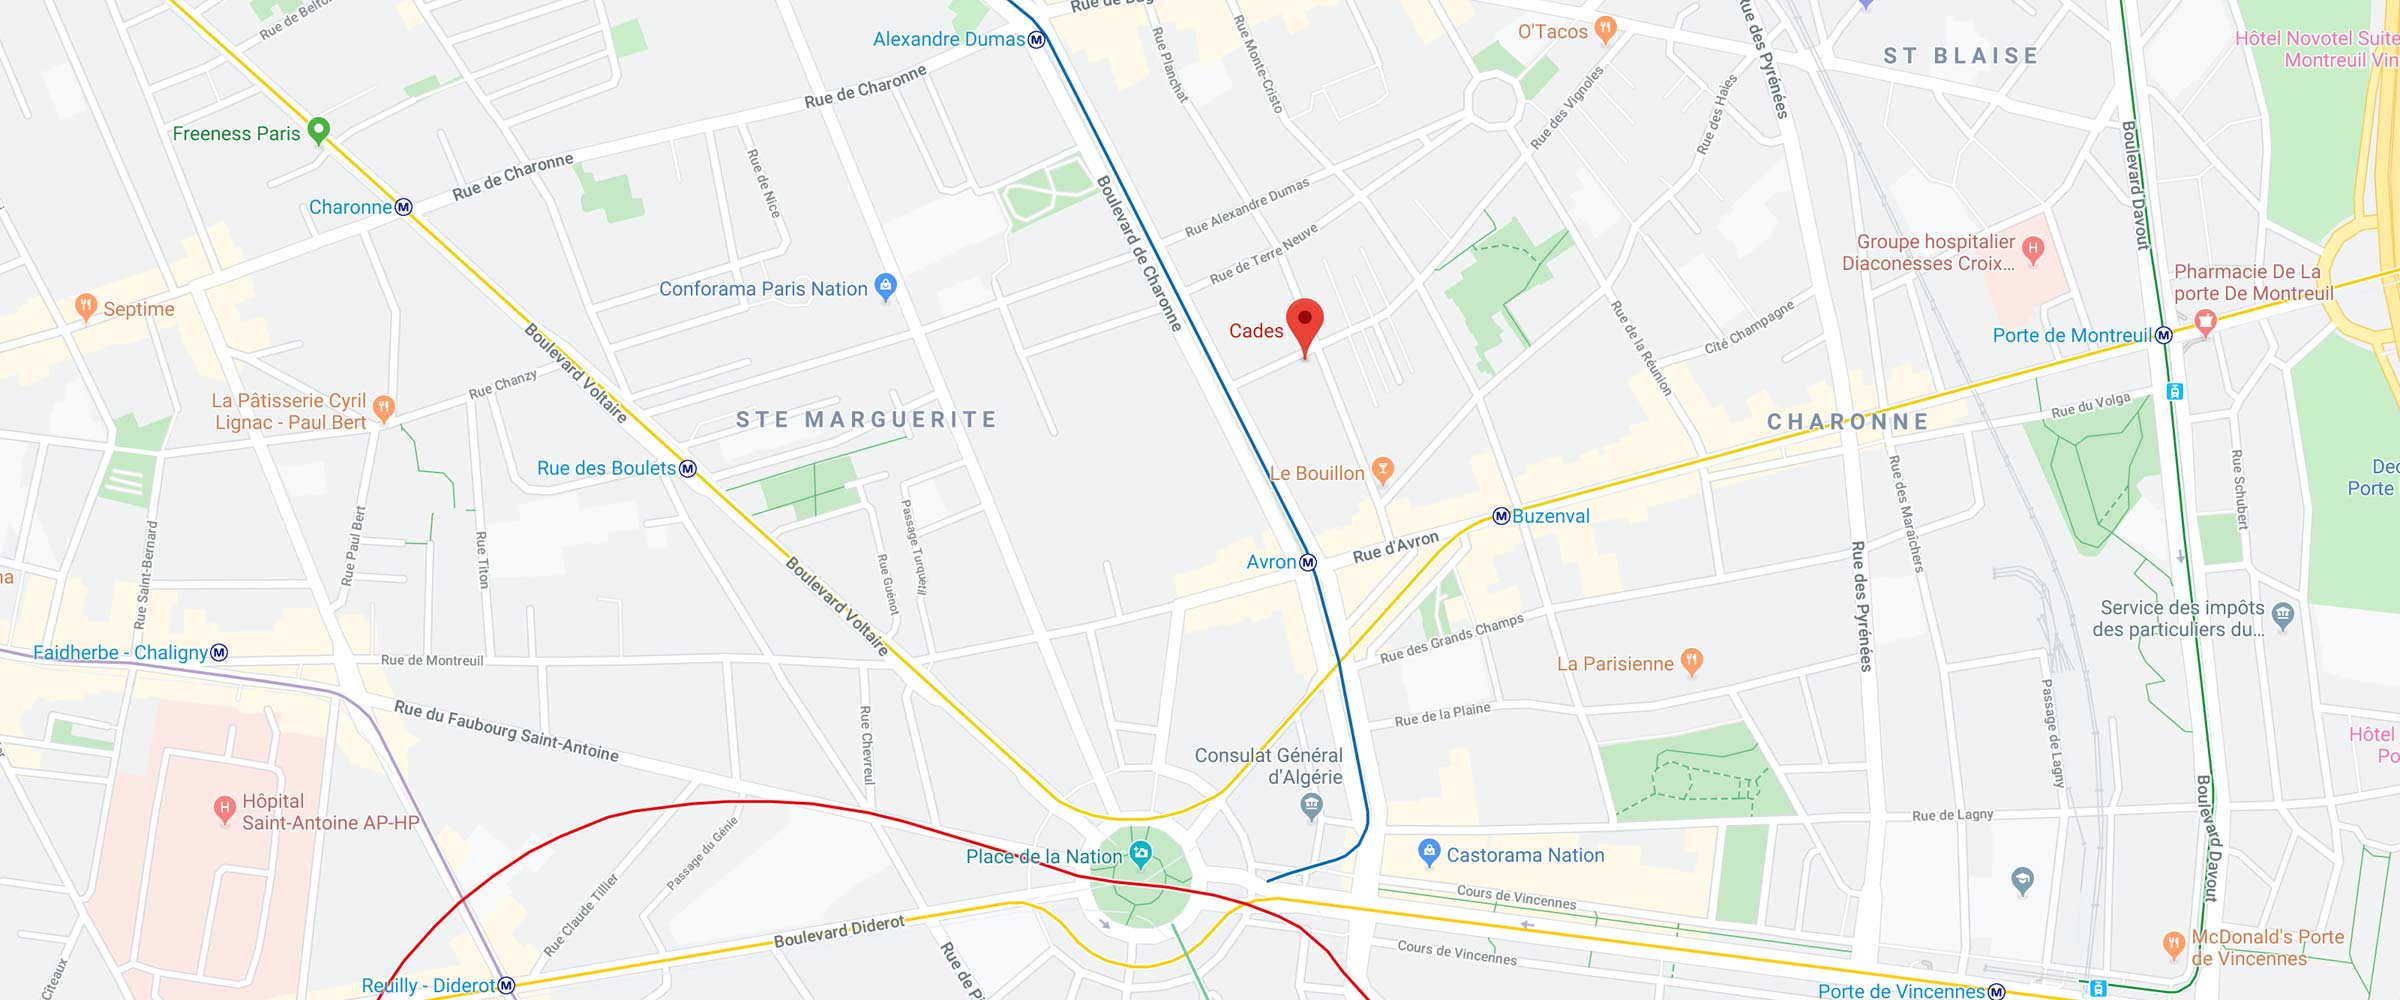 plan cades 12 rue des vignoles 75020 paris france